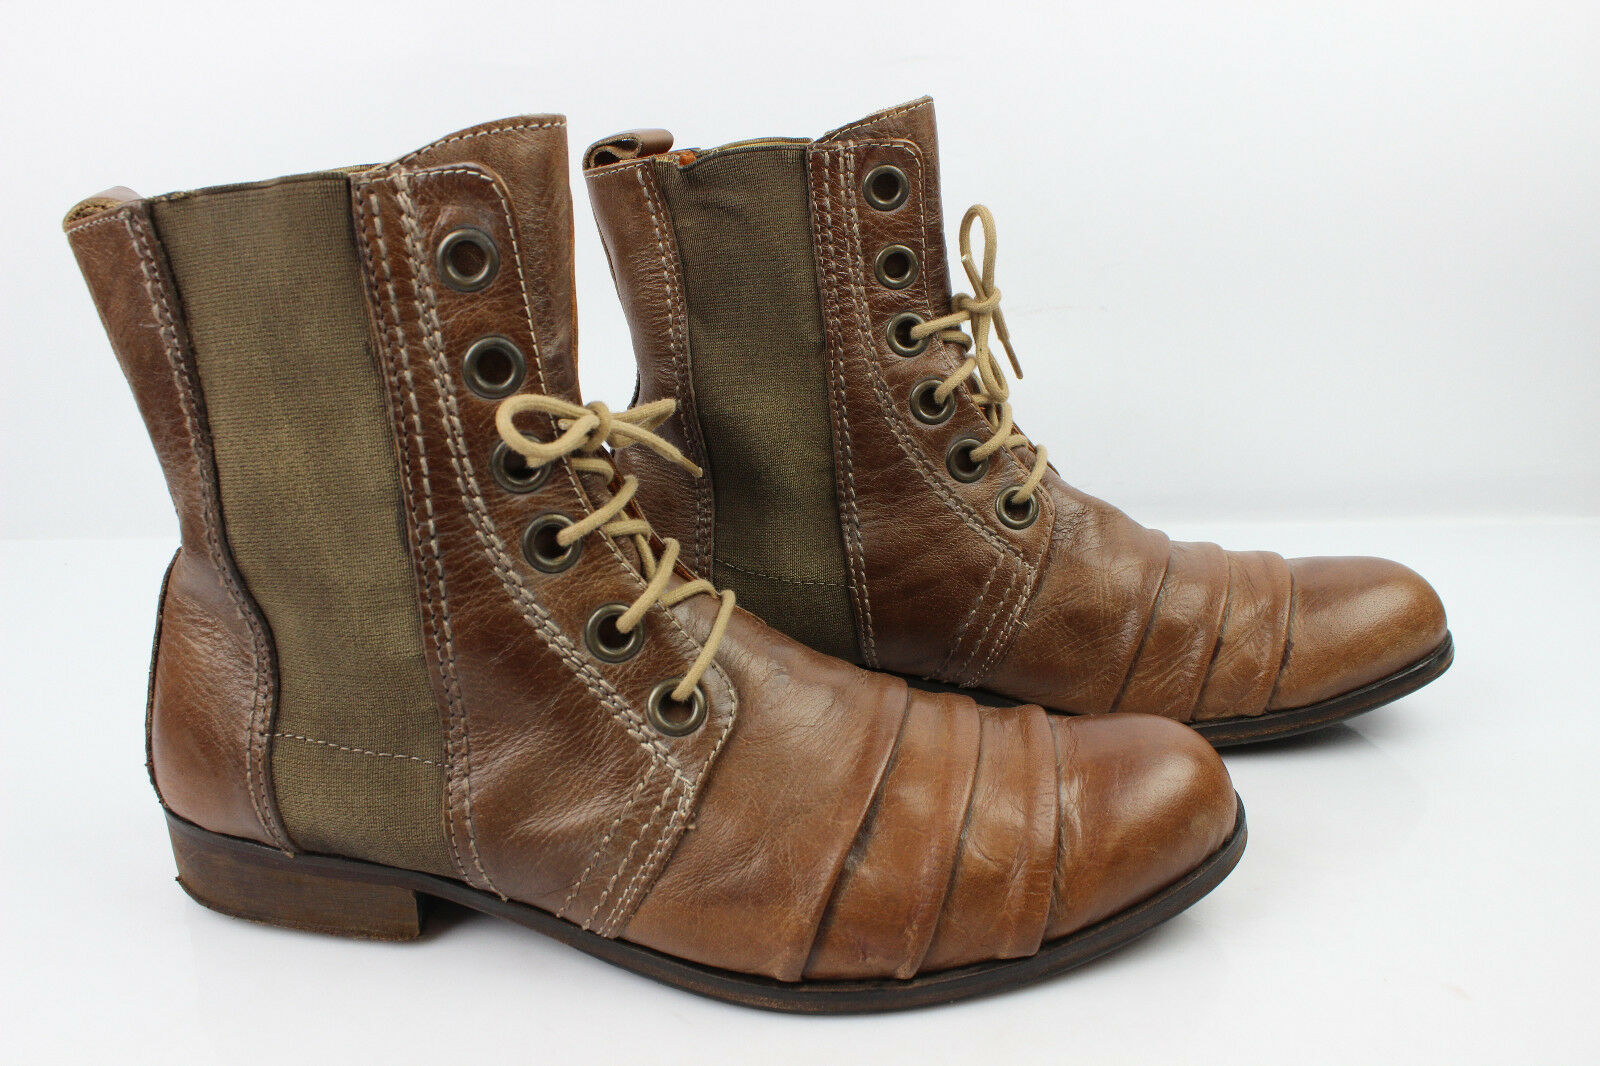 Bottines WE ARE Marron Tout Cuir Marron ARE T 42 Bandes Elastiquées c4b823